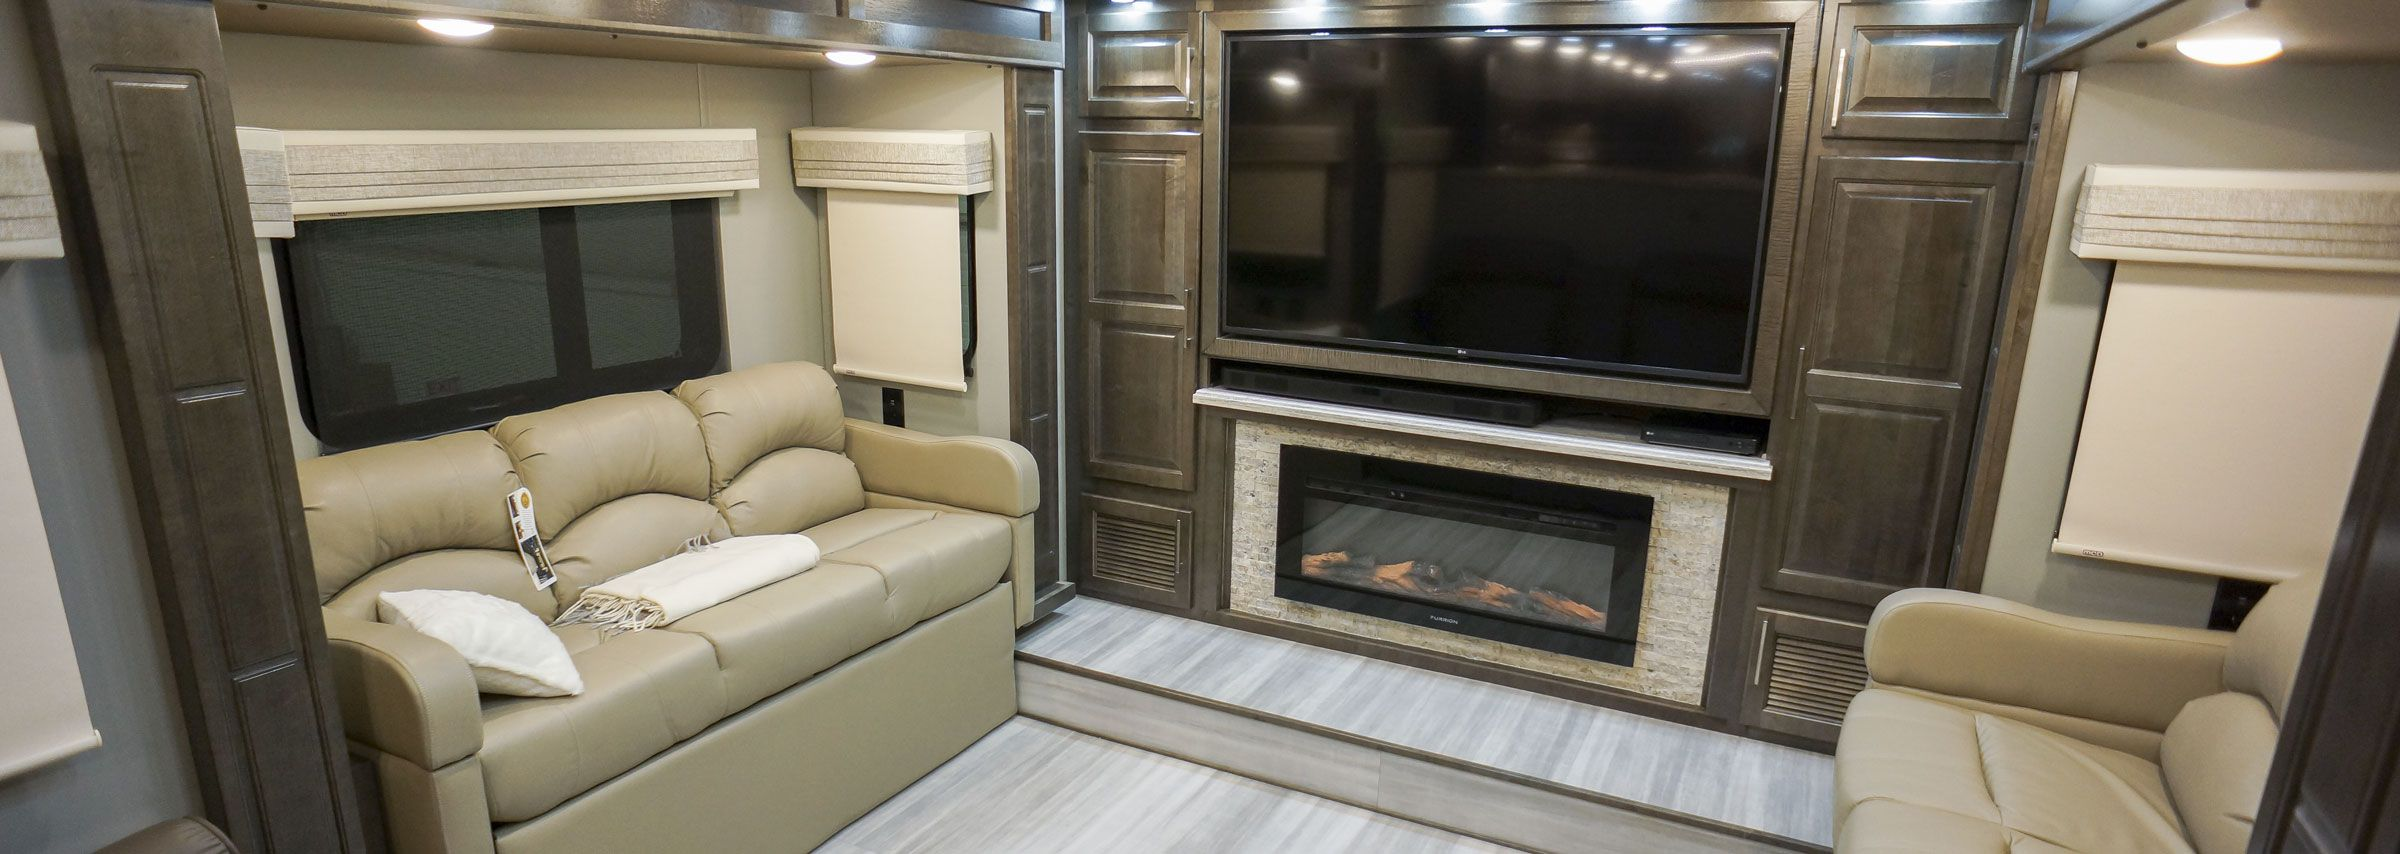 luxury front living fifth wheel